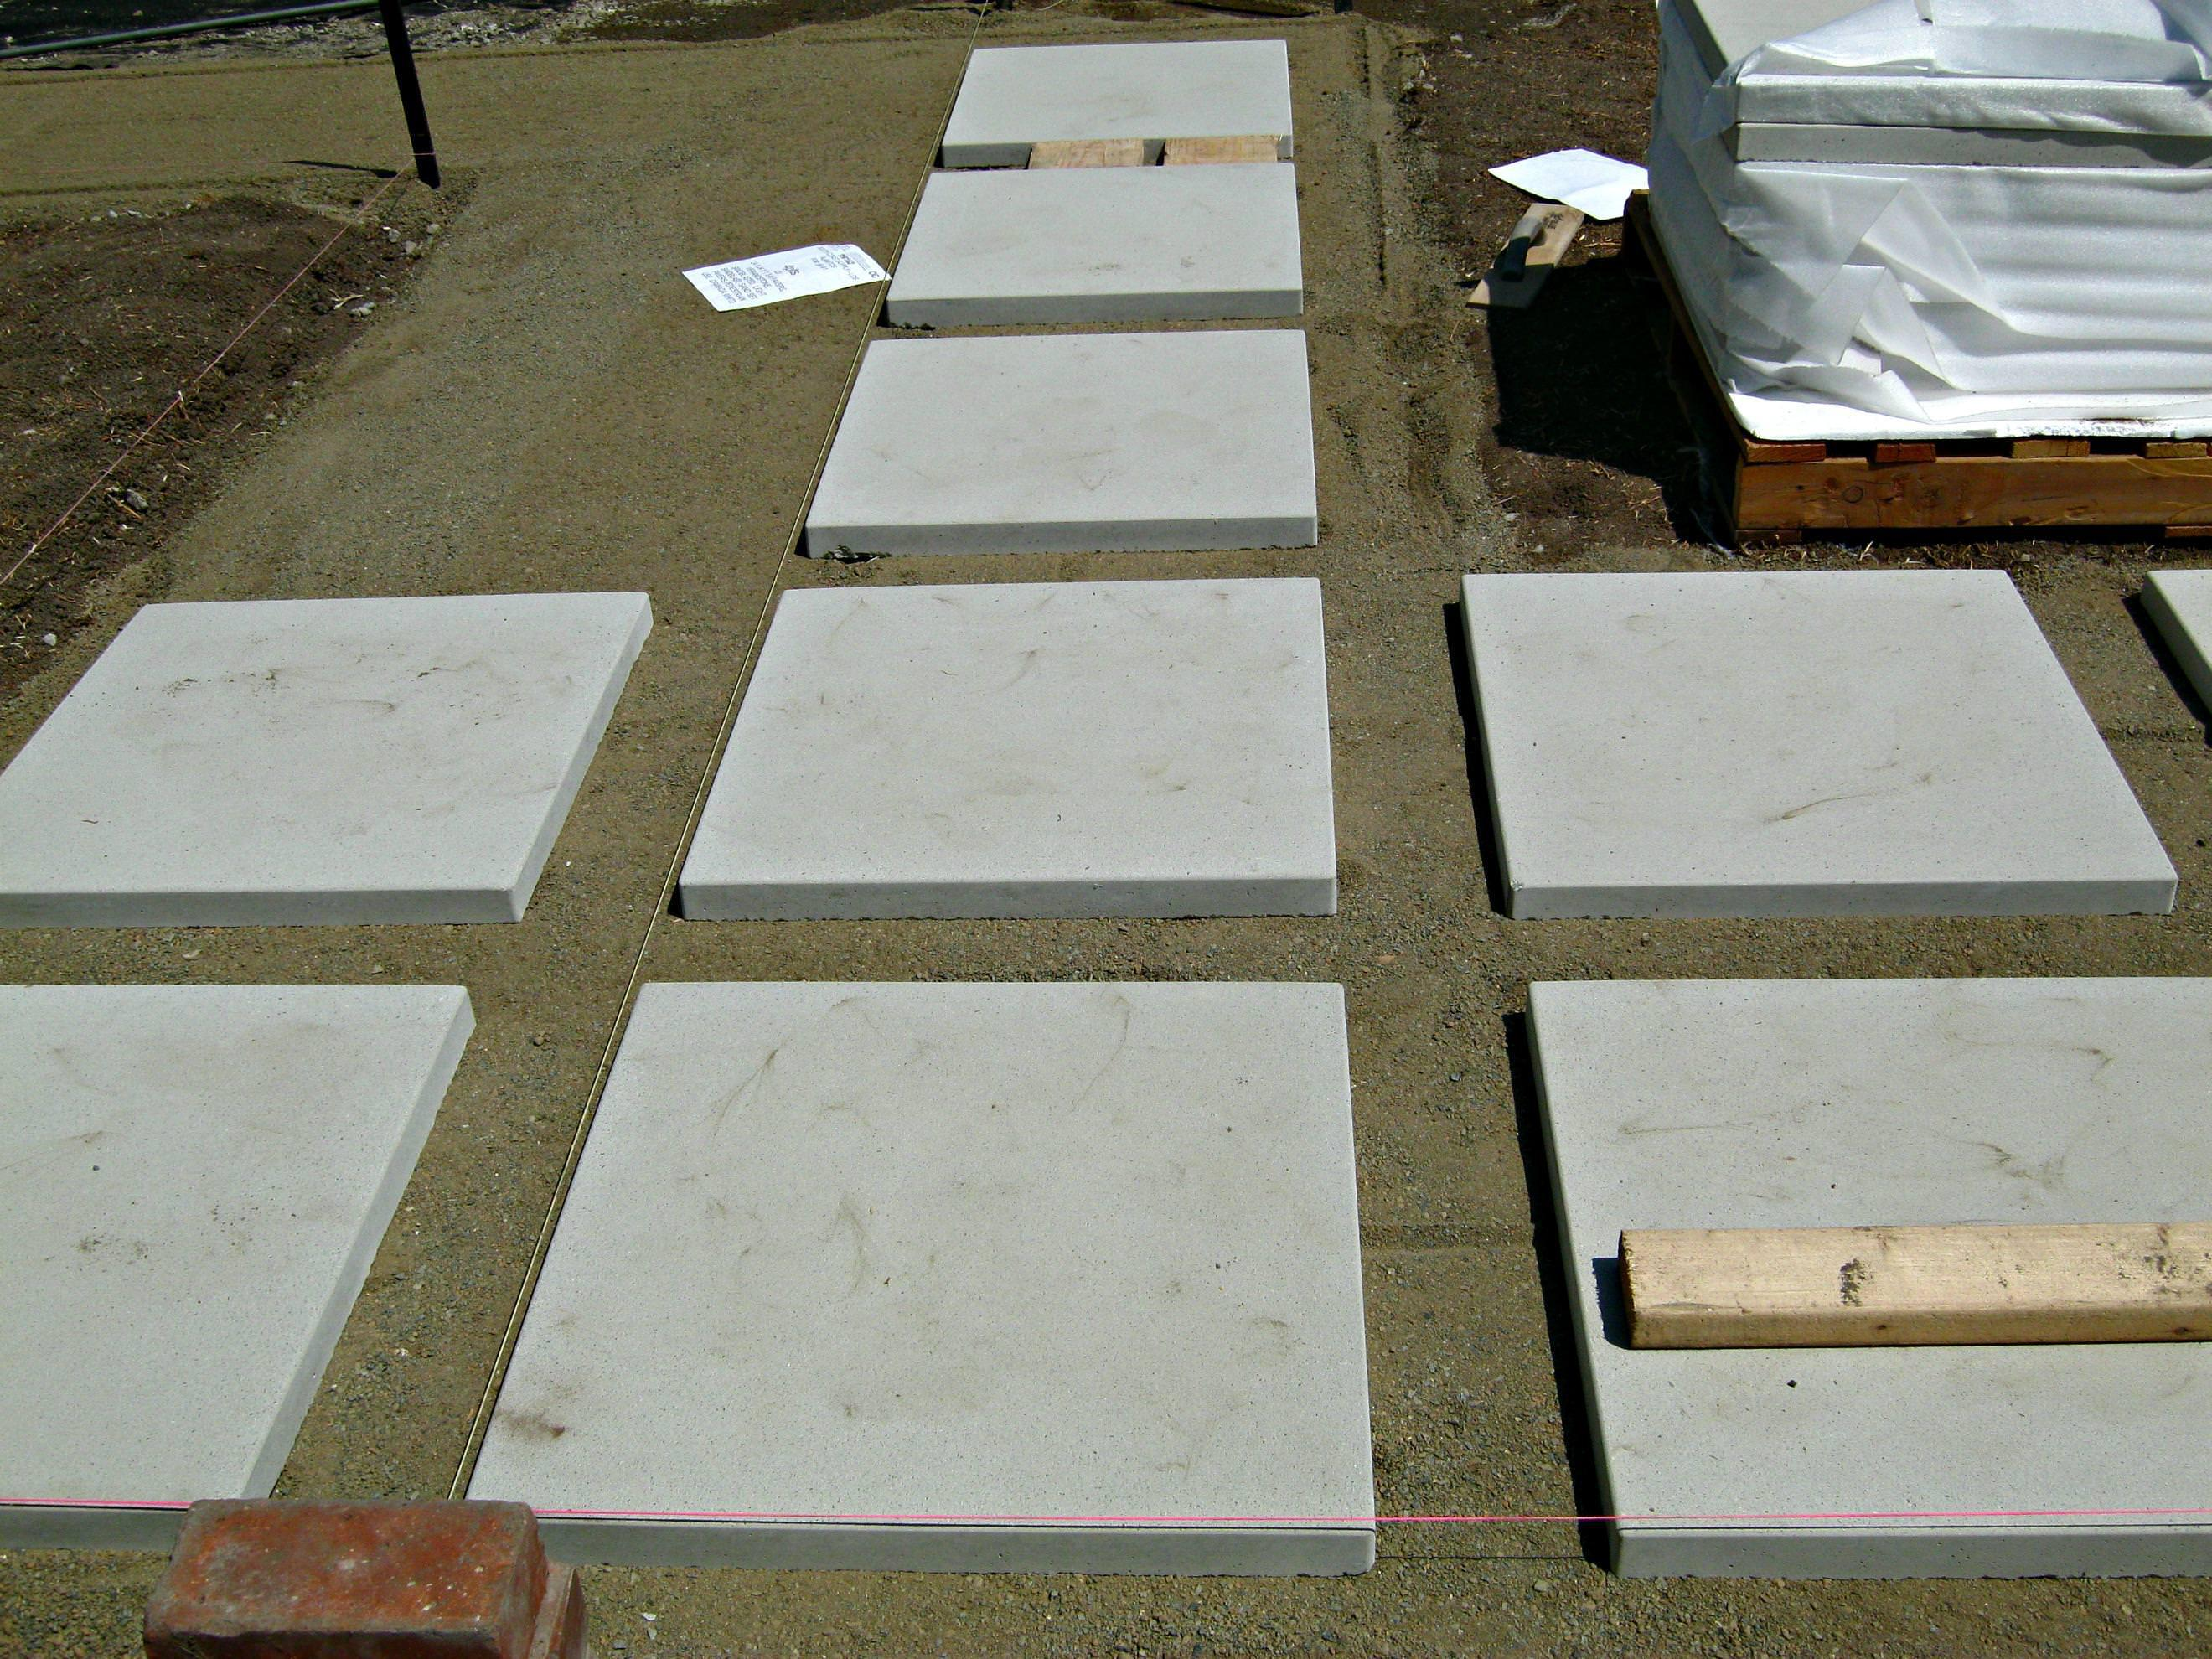 Cement pavers you can looking concrete paviours you can looking garden paving bricks you can looking outside paving slabs